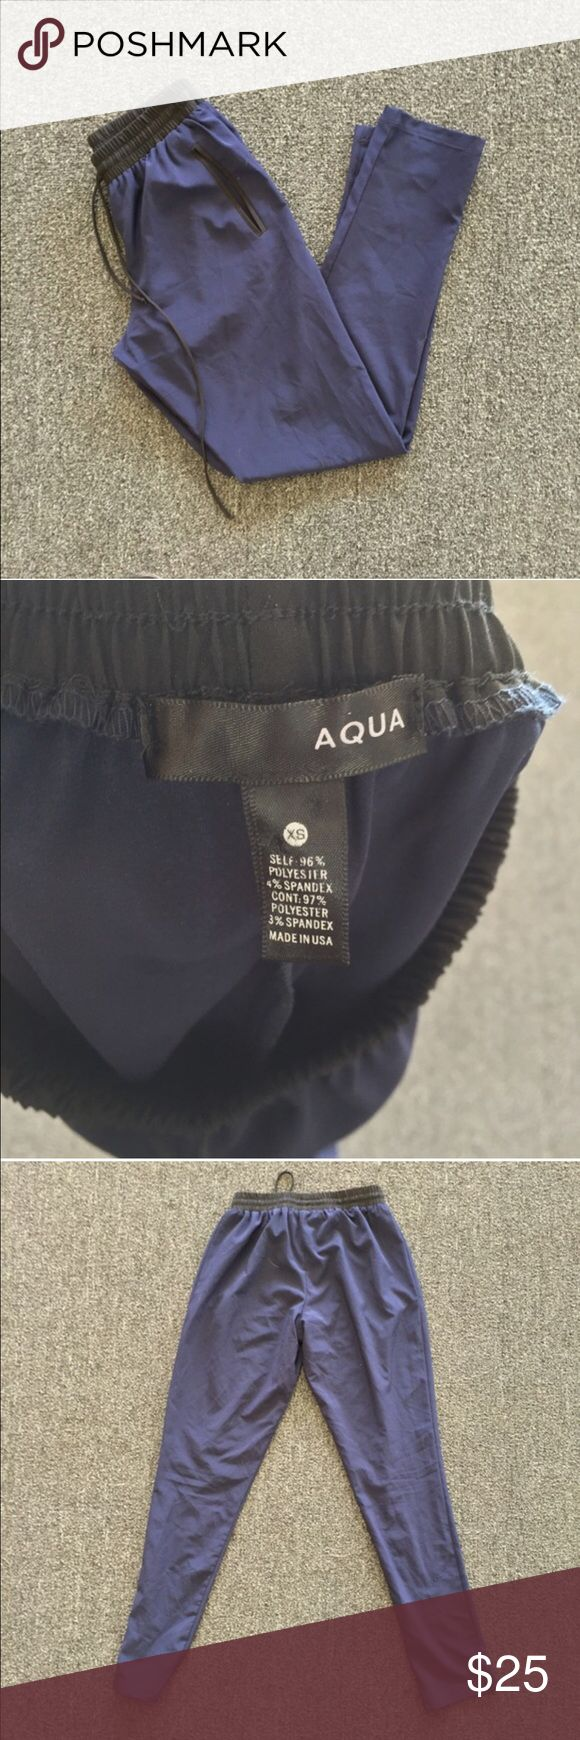 Aqua Navy Blue and Black Joggers Super cute joggers! Excellent condition. Inseam: 28.5 inches. 96% polyester, and 4% spandex. Aqua Pants Track Pants & Joggers